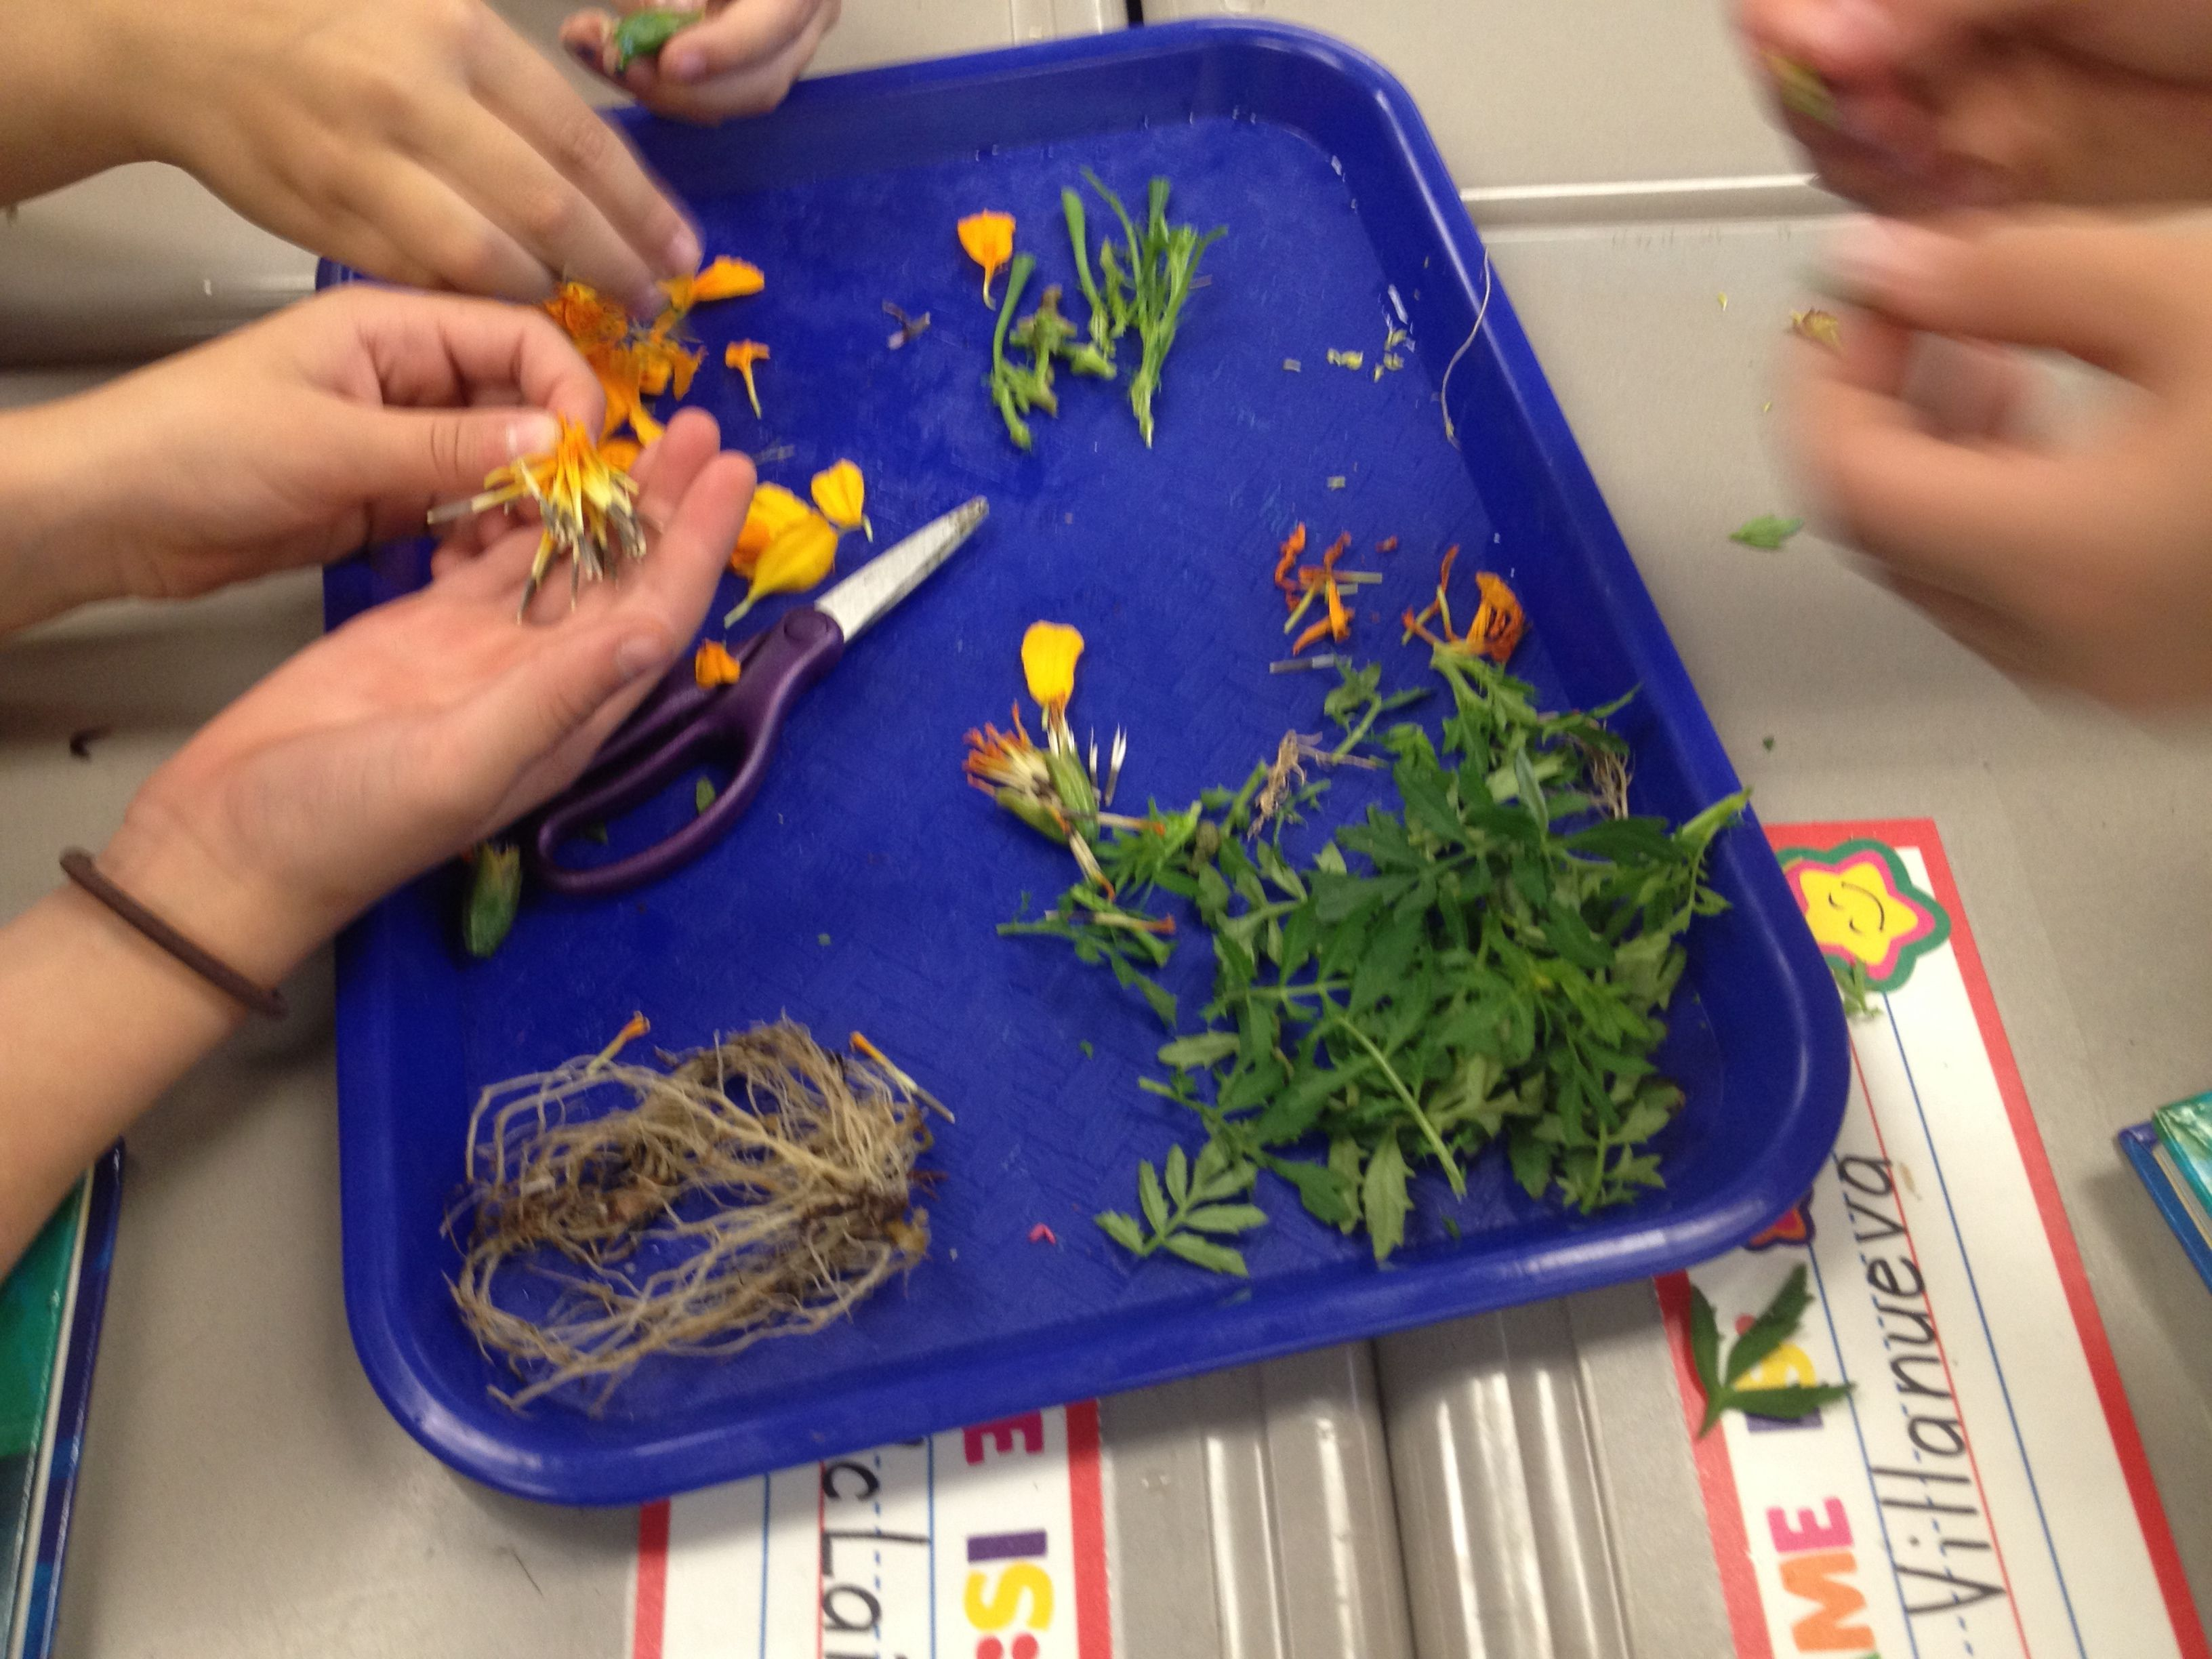 Marigold Dissection Treasures Unit 5 Amp Life Science